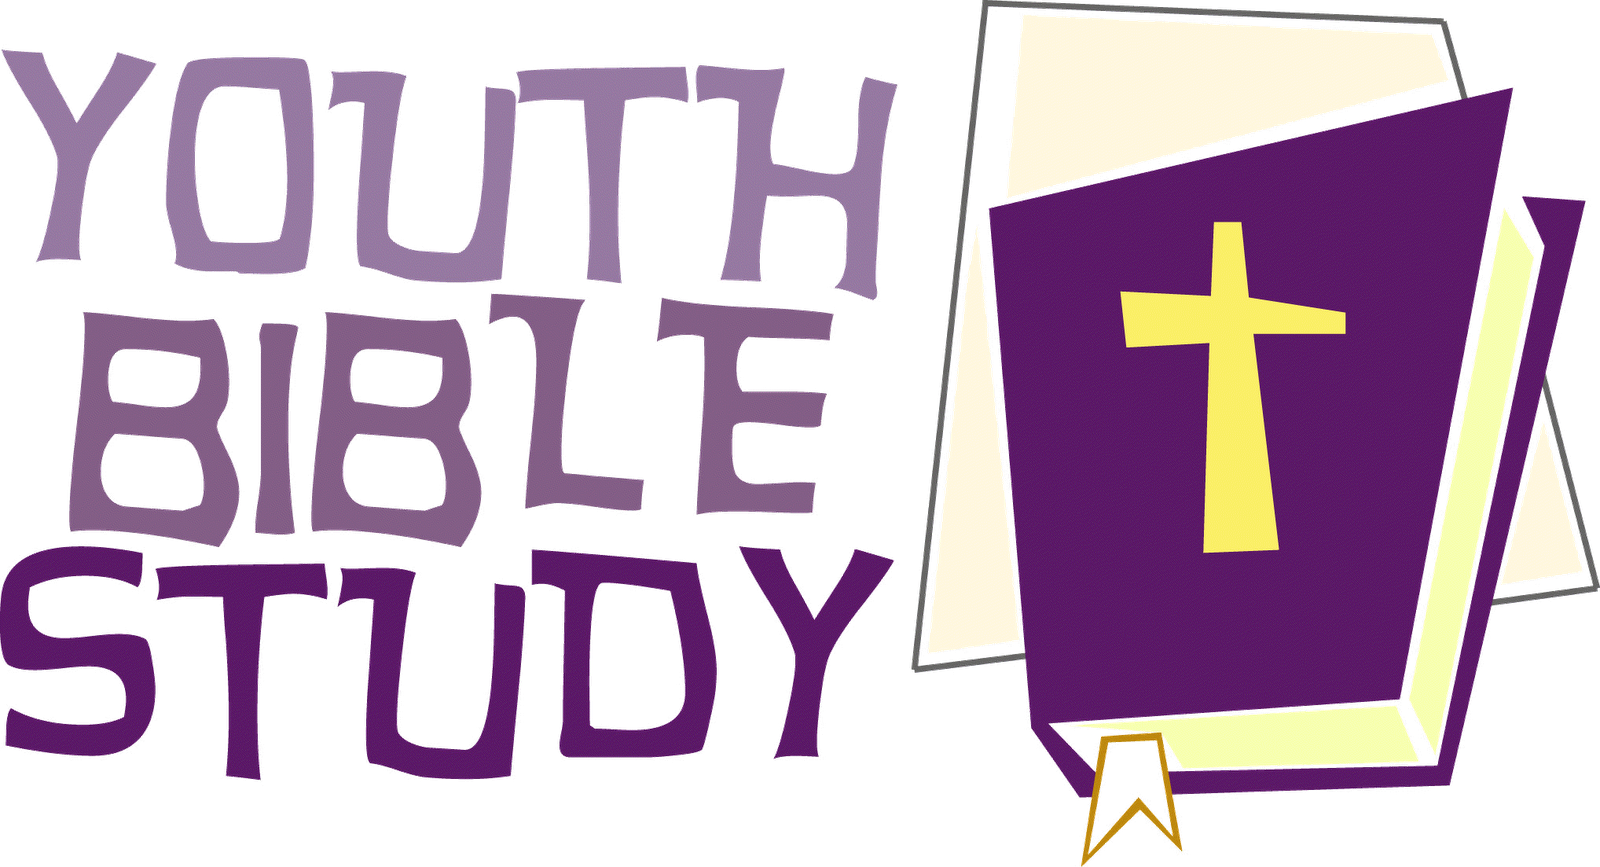 Study clipart home clipart.  collection of youth